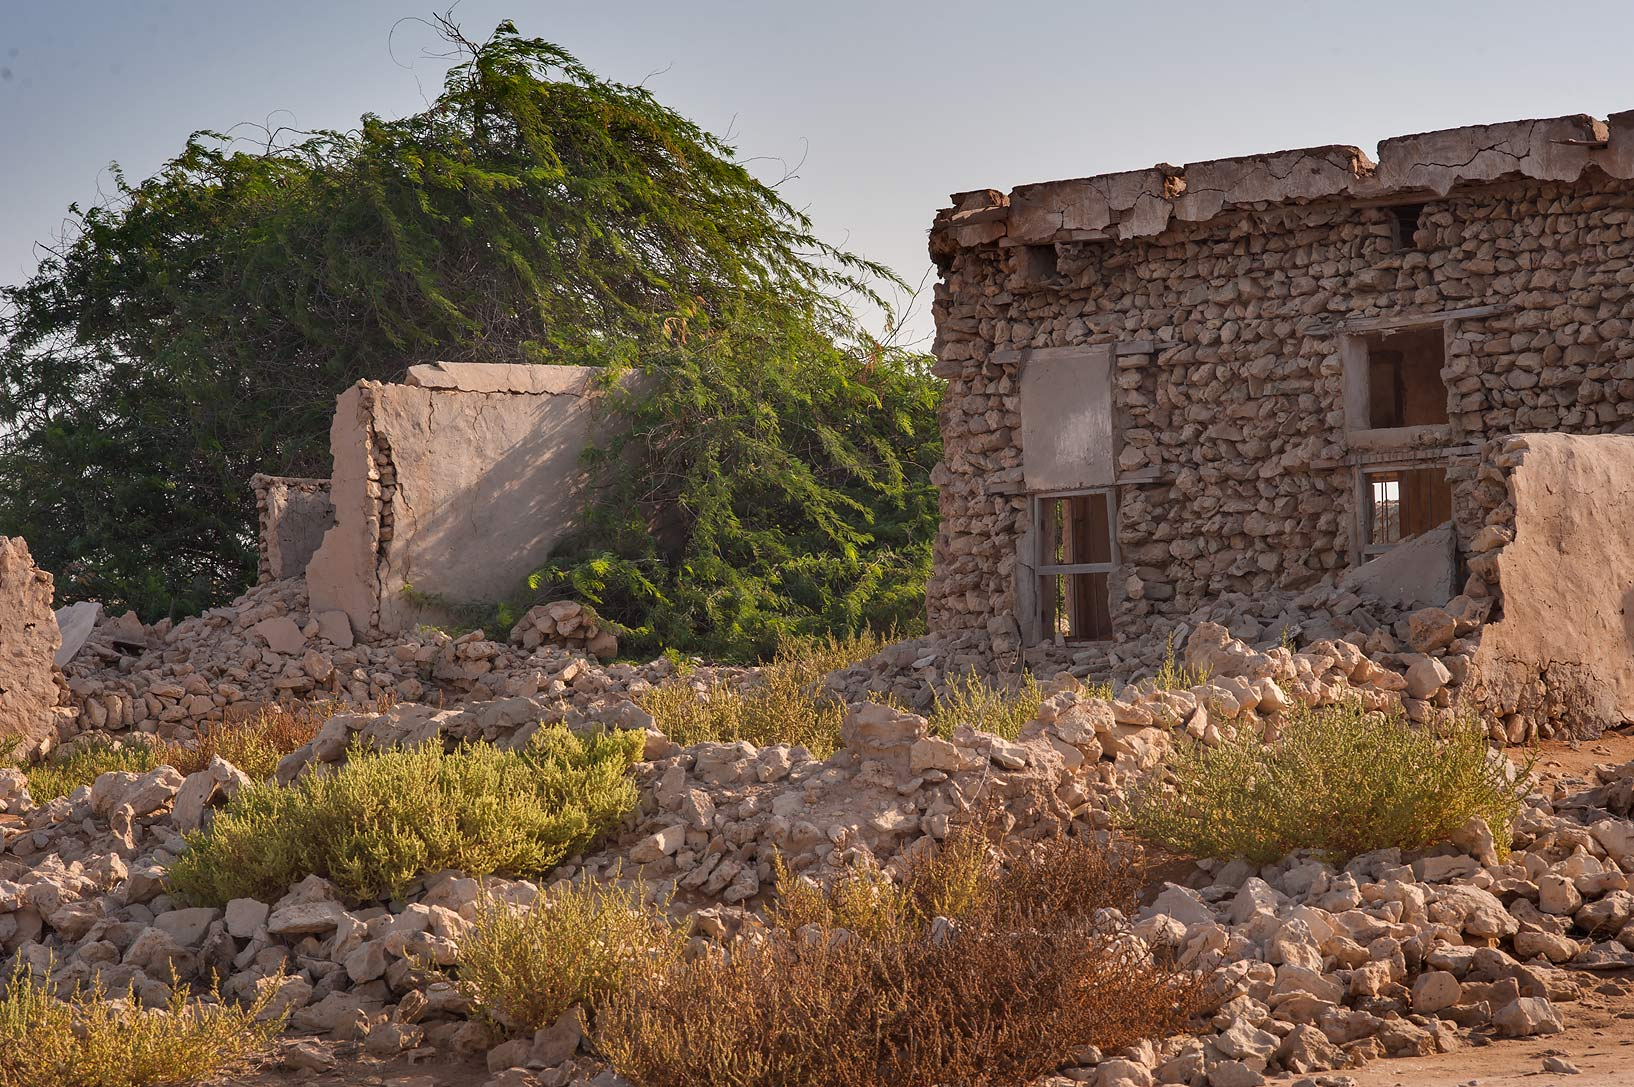 Ruined village of Al Jumail (Jumayl) west of Ruwais on northwest coast. Qatar